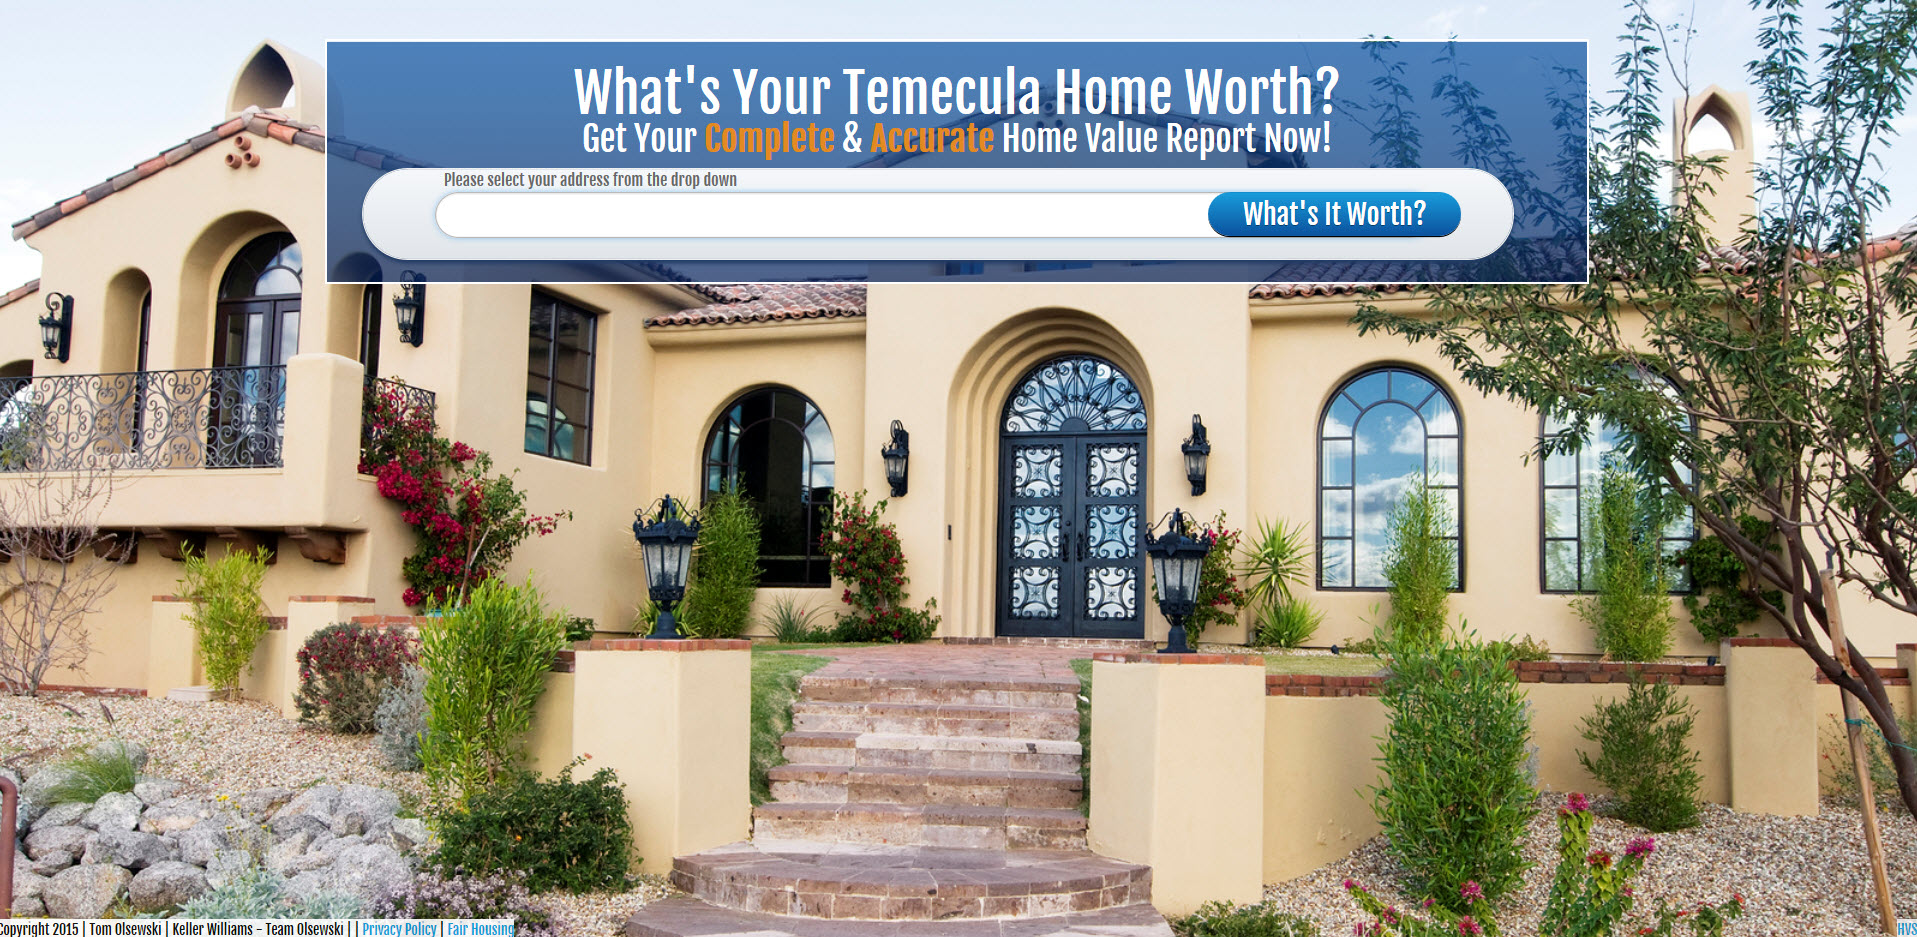 Temecula Home Value